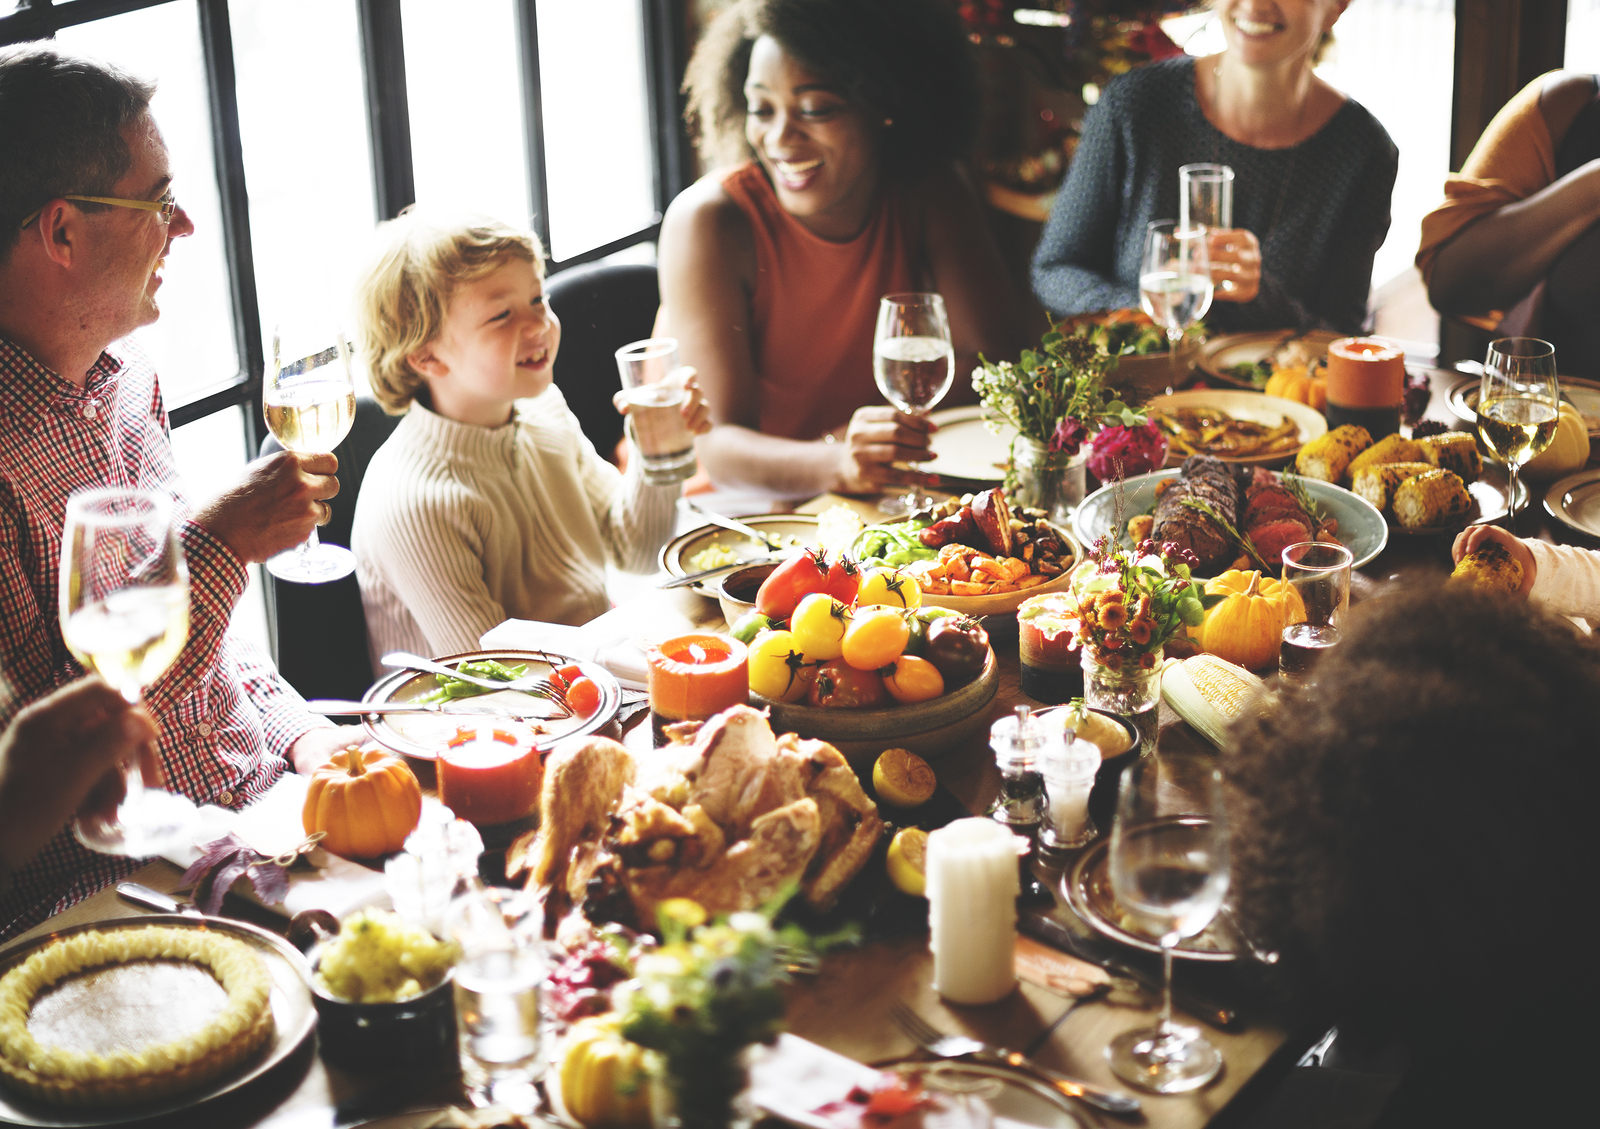 5 Things to do With Children On Thanksgiving